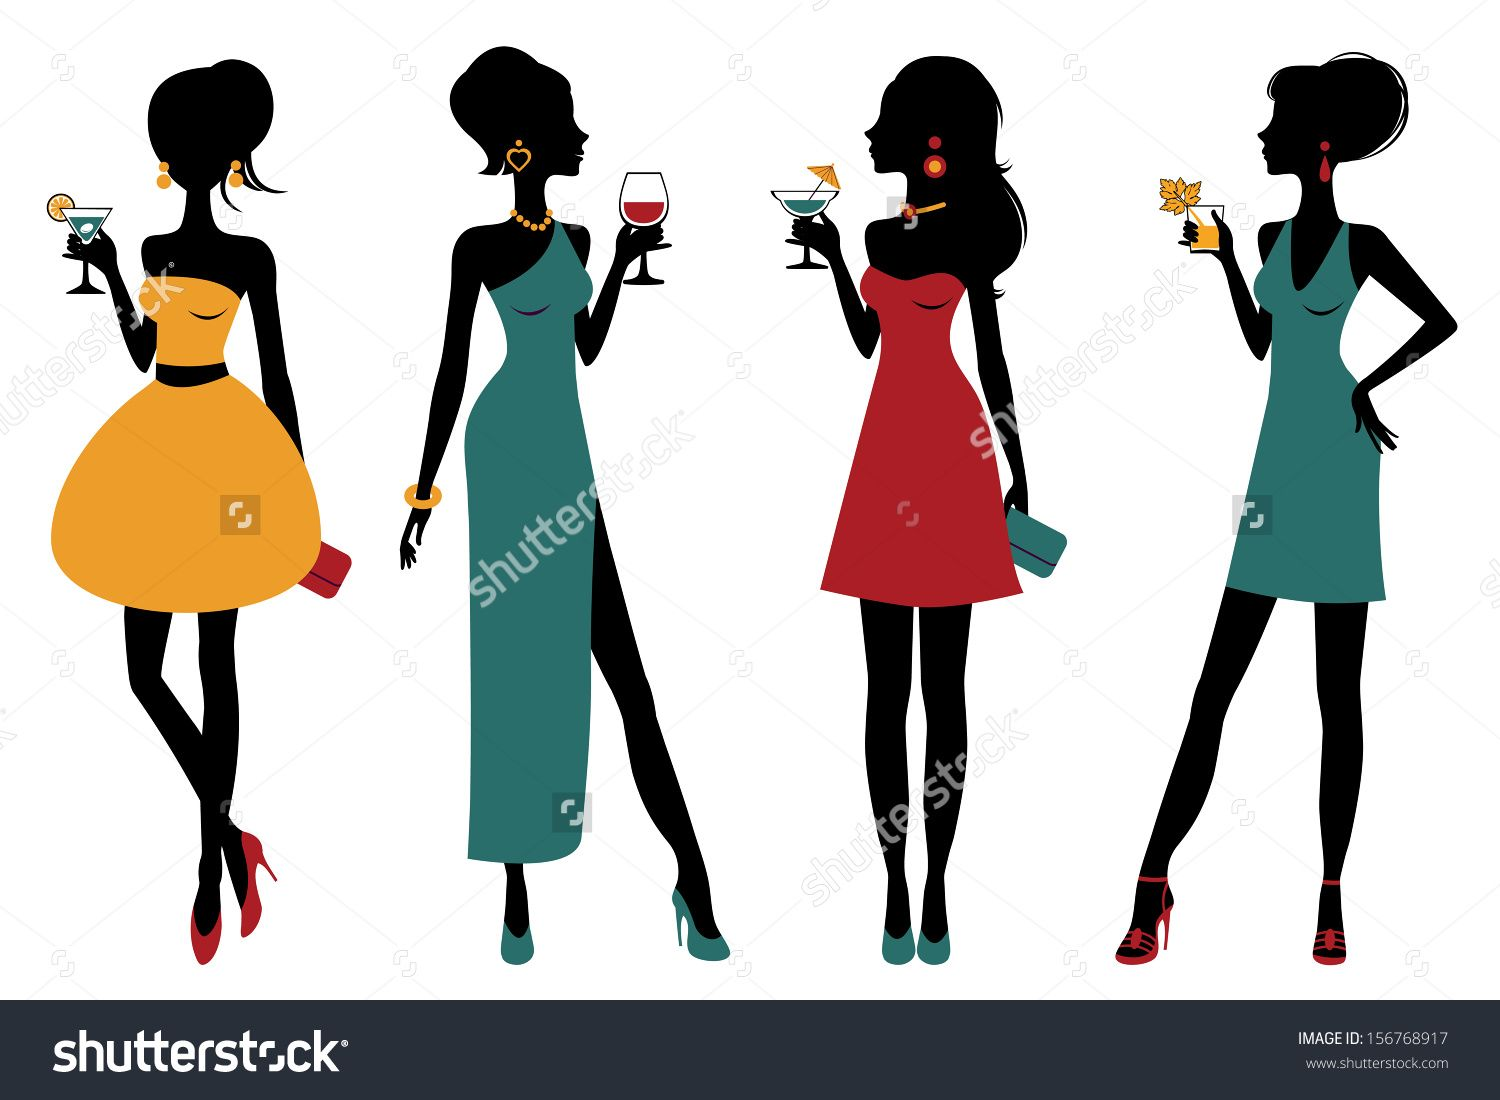 image result for girl with cocktail silhouette poster ideas rh pinterest com Girl Clip Art Popular Girl Clip Art